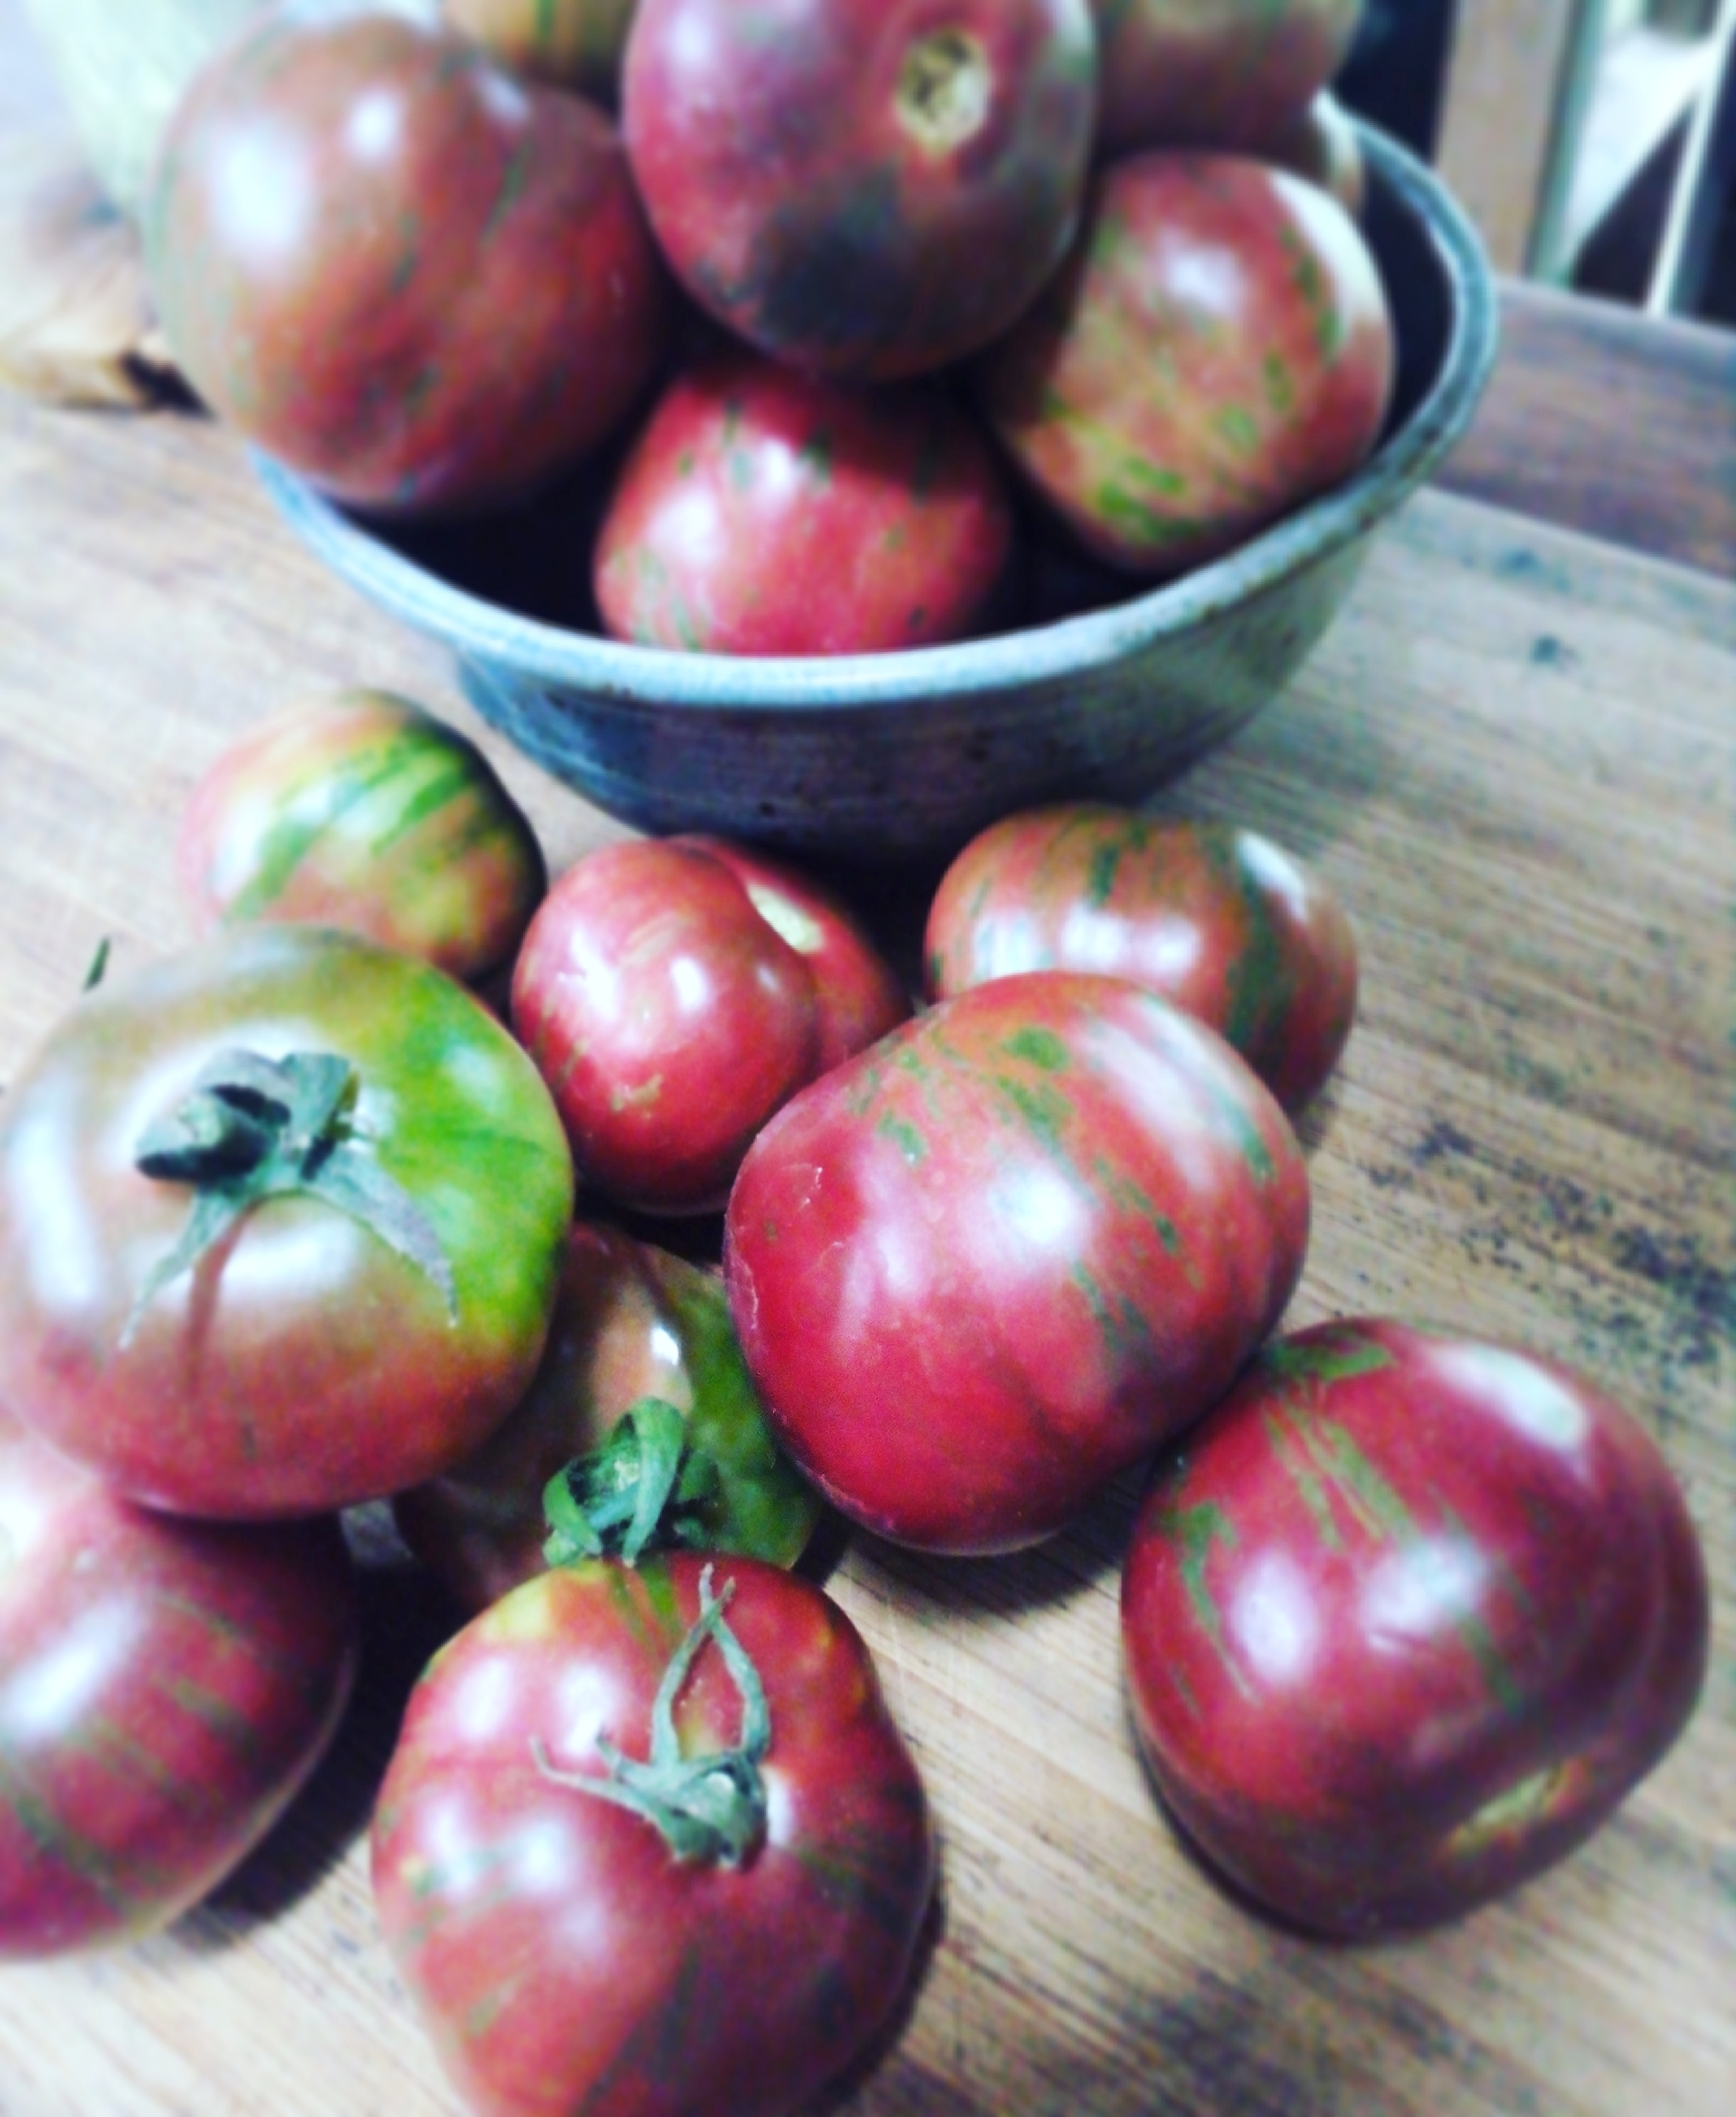 Tomatoes from the Land